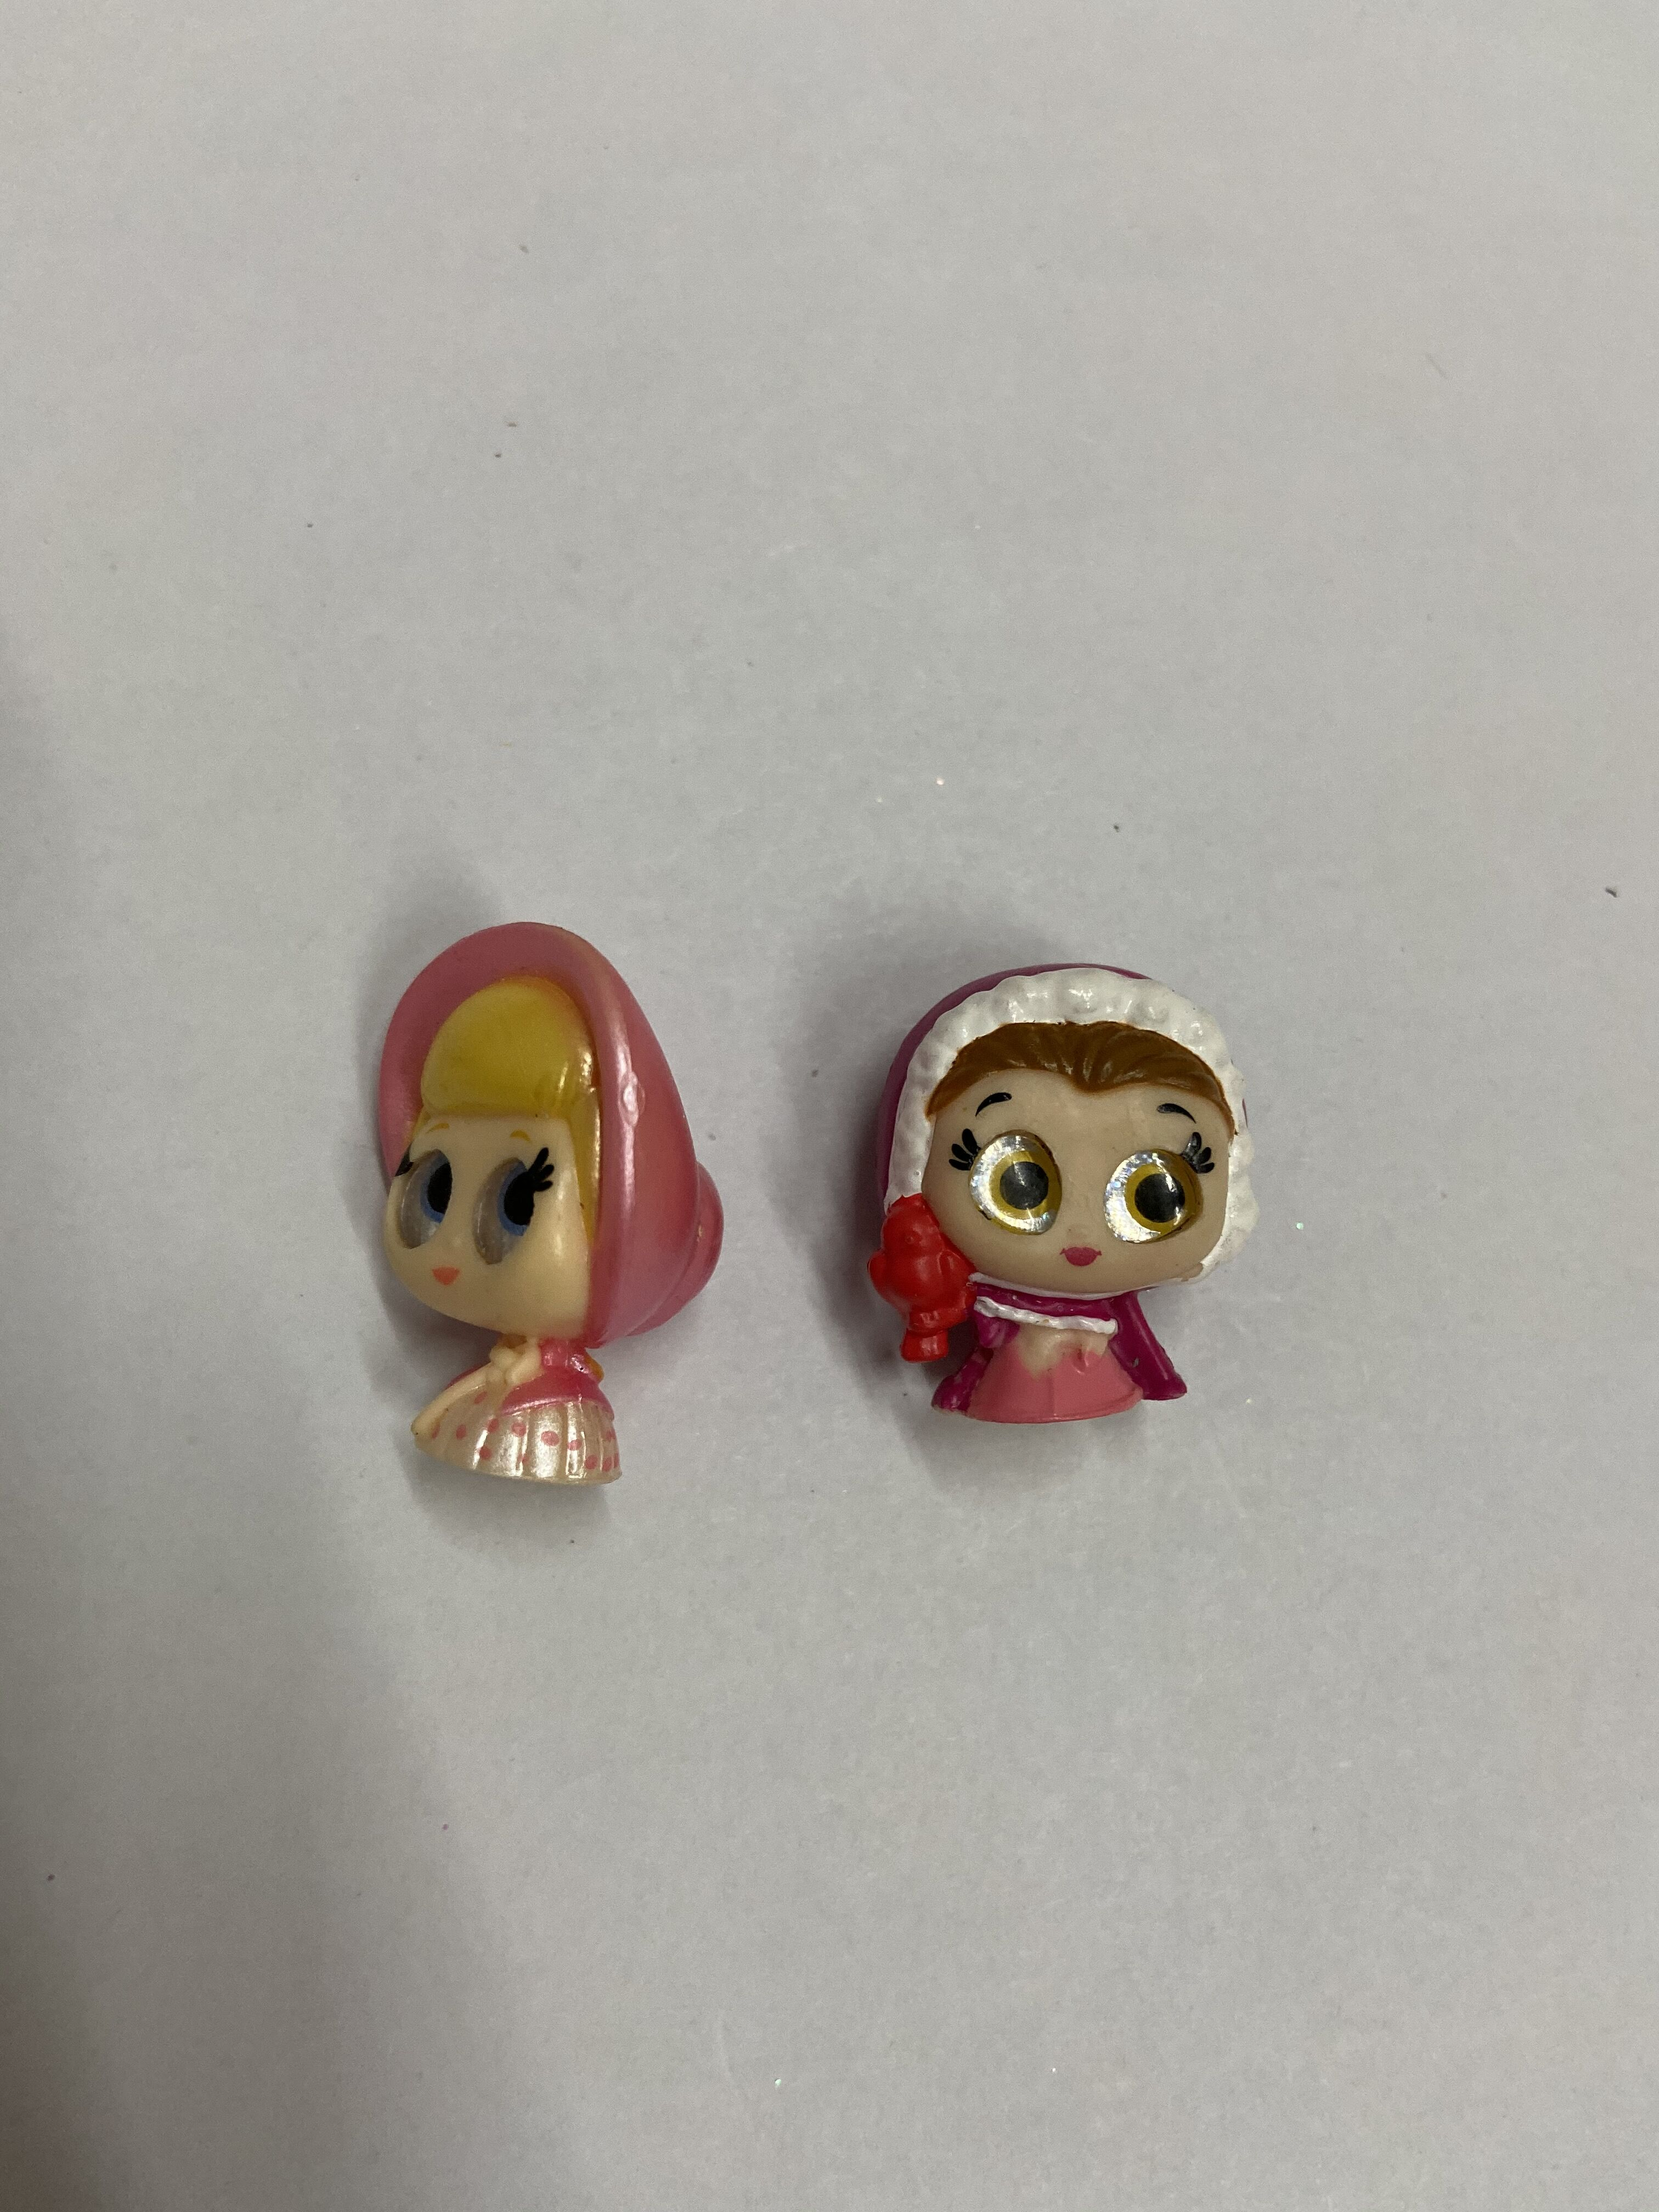 Doorables Bo Peep Belle In Red Winter Outfit Collection Model Toys Anime Cosplay Rare Version Mini Figure 1 Peek